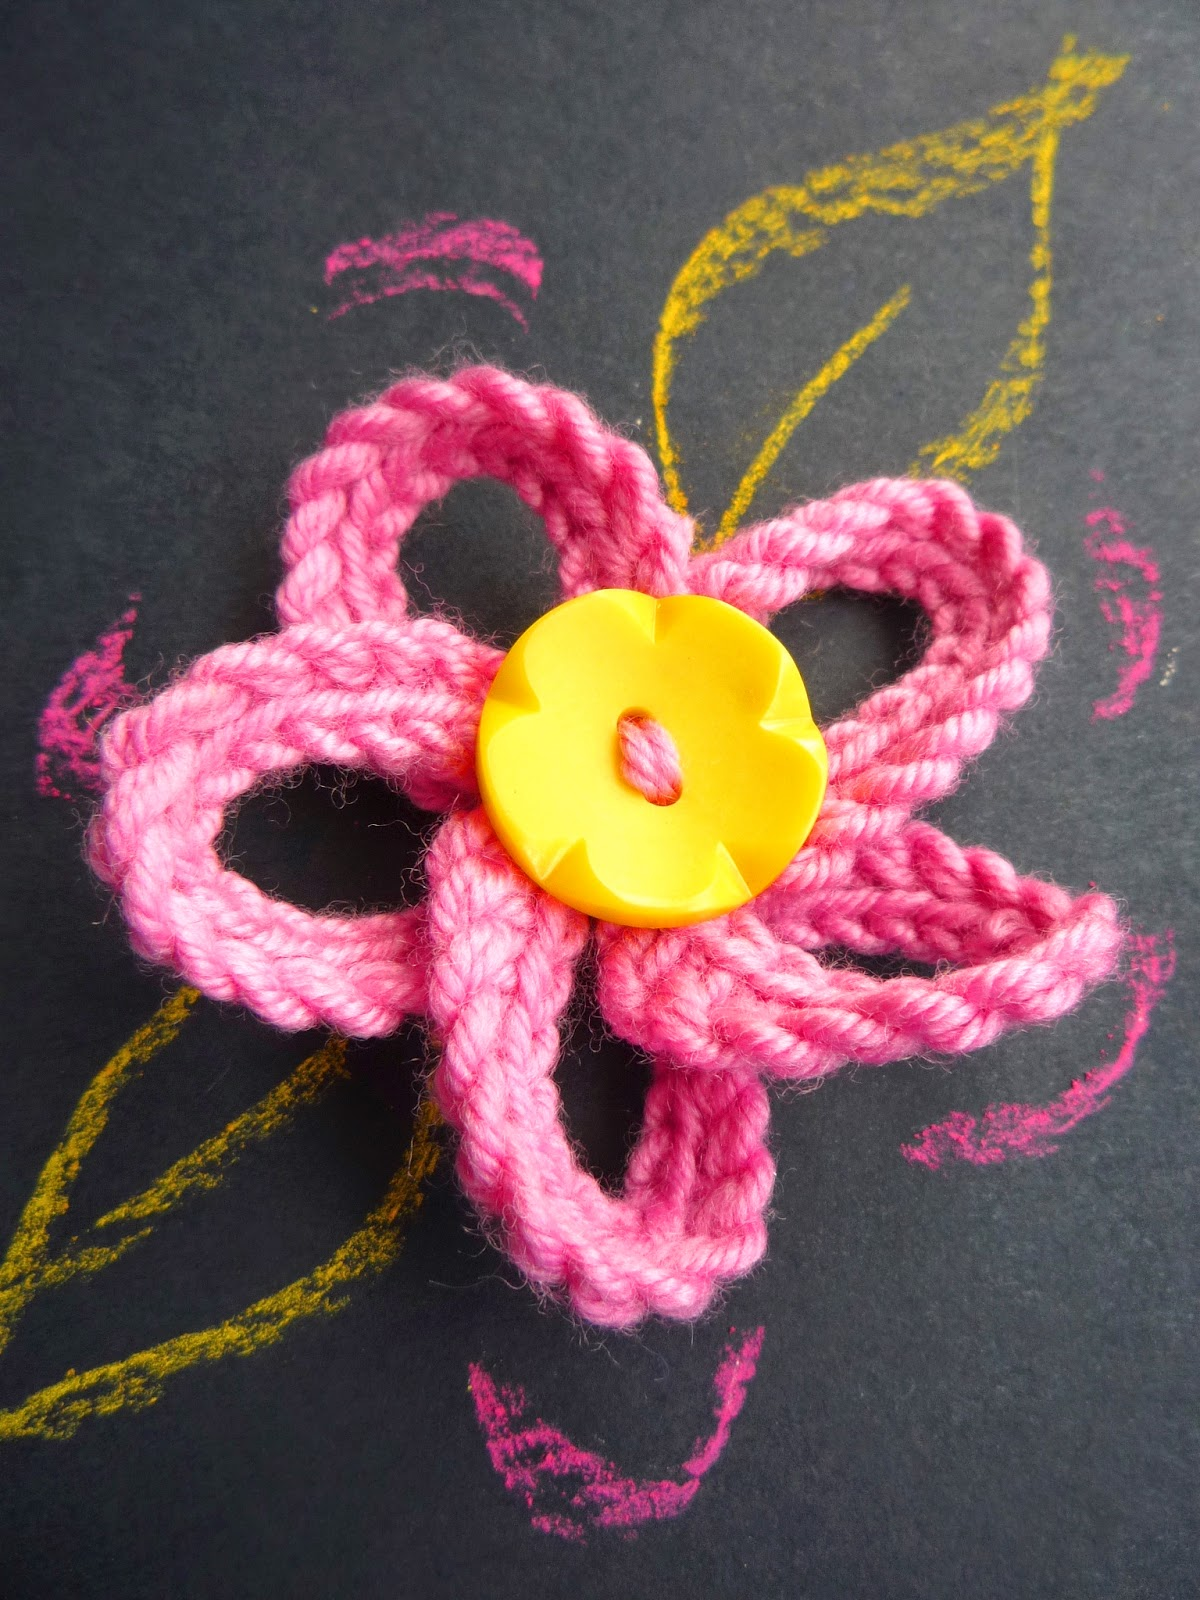 the Creations of Crazy Dazy: knitted flower like crochet